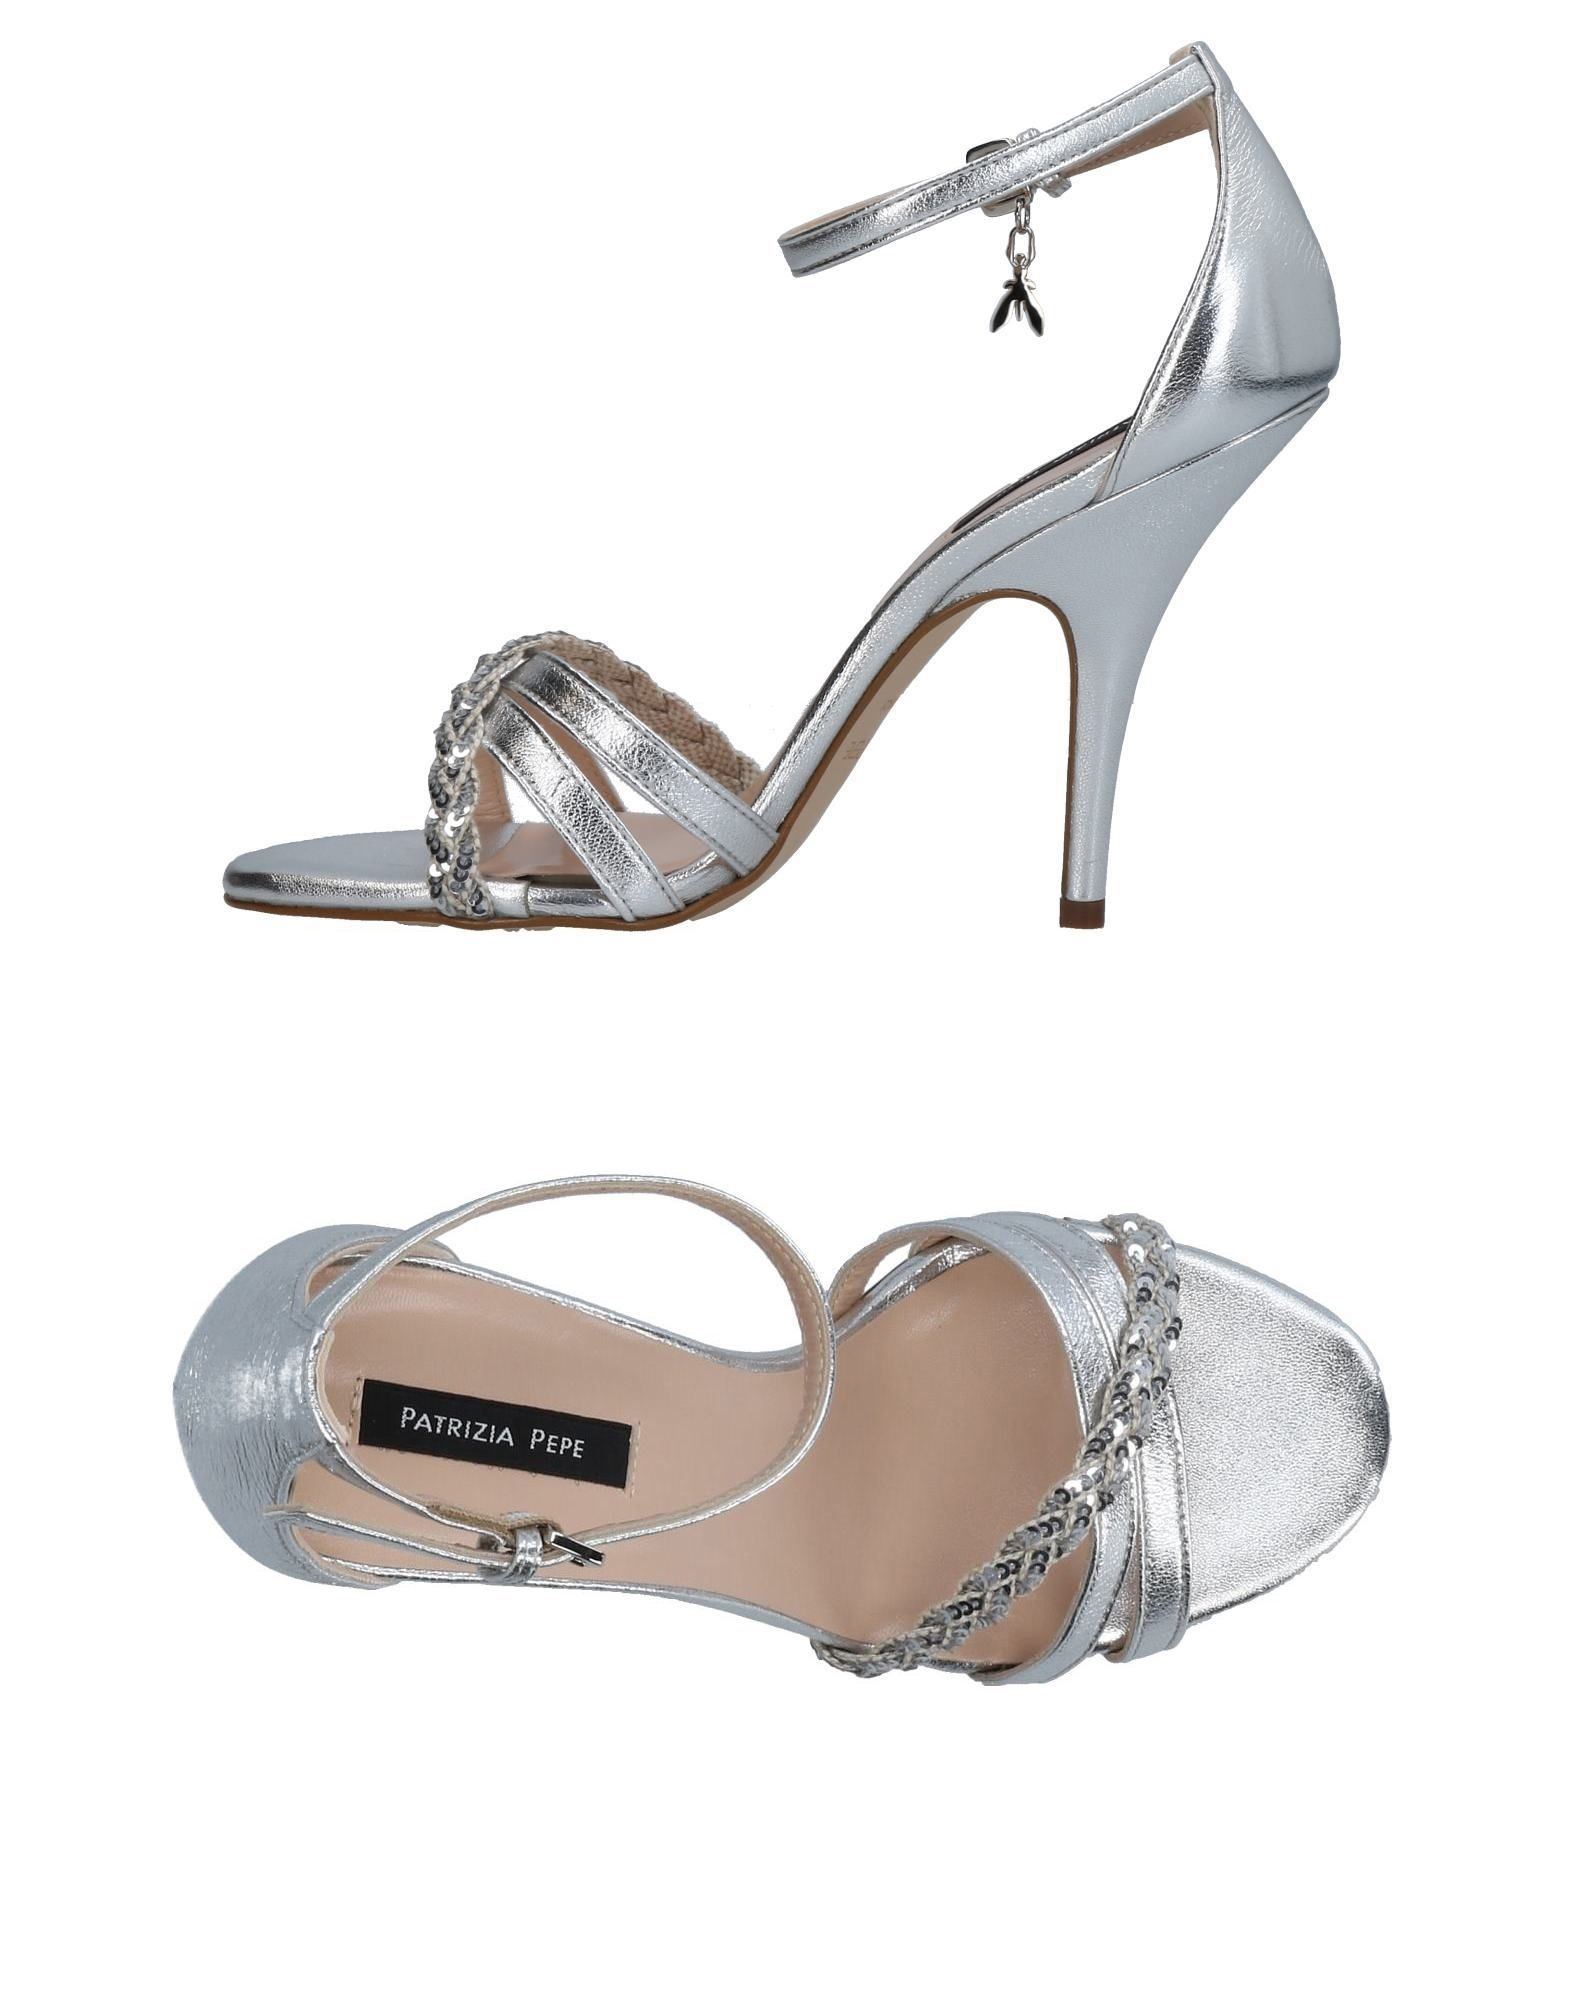 Patrizia Pepe Silver Leather Heeled Sandals